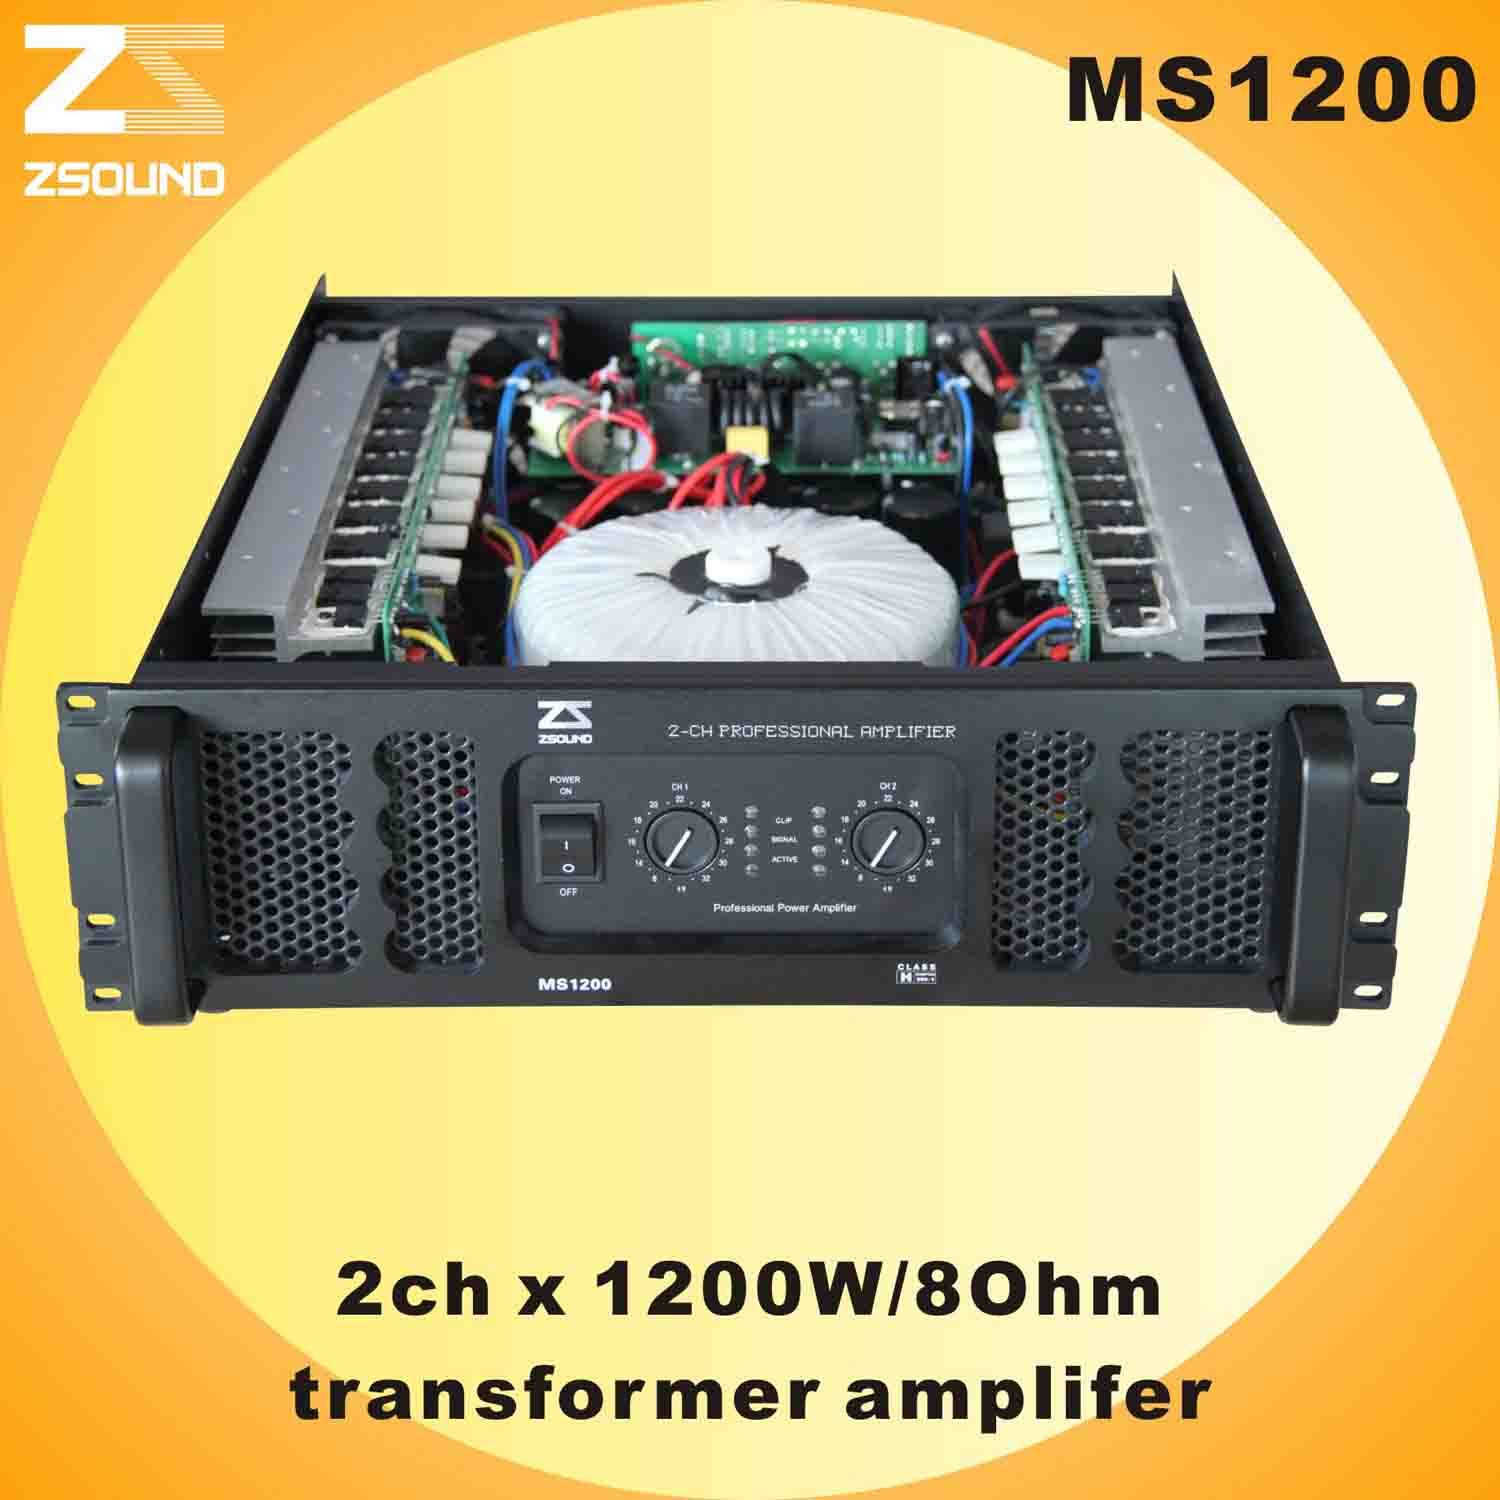 China Professional High Power Amplifier (MS1200) - China Professional ...: zsound001.en.made-in-china.com/product/gSvmxWKcJJhf/China...